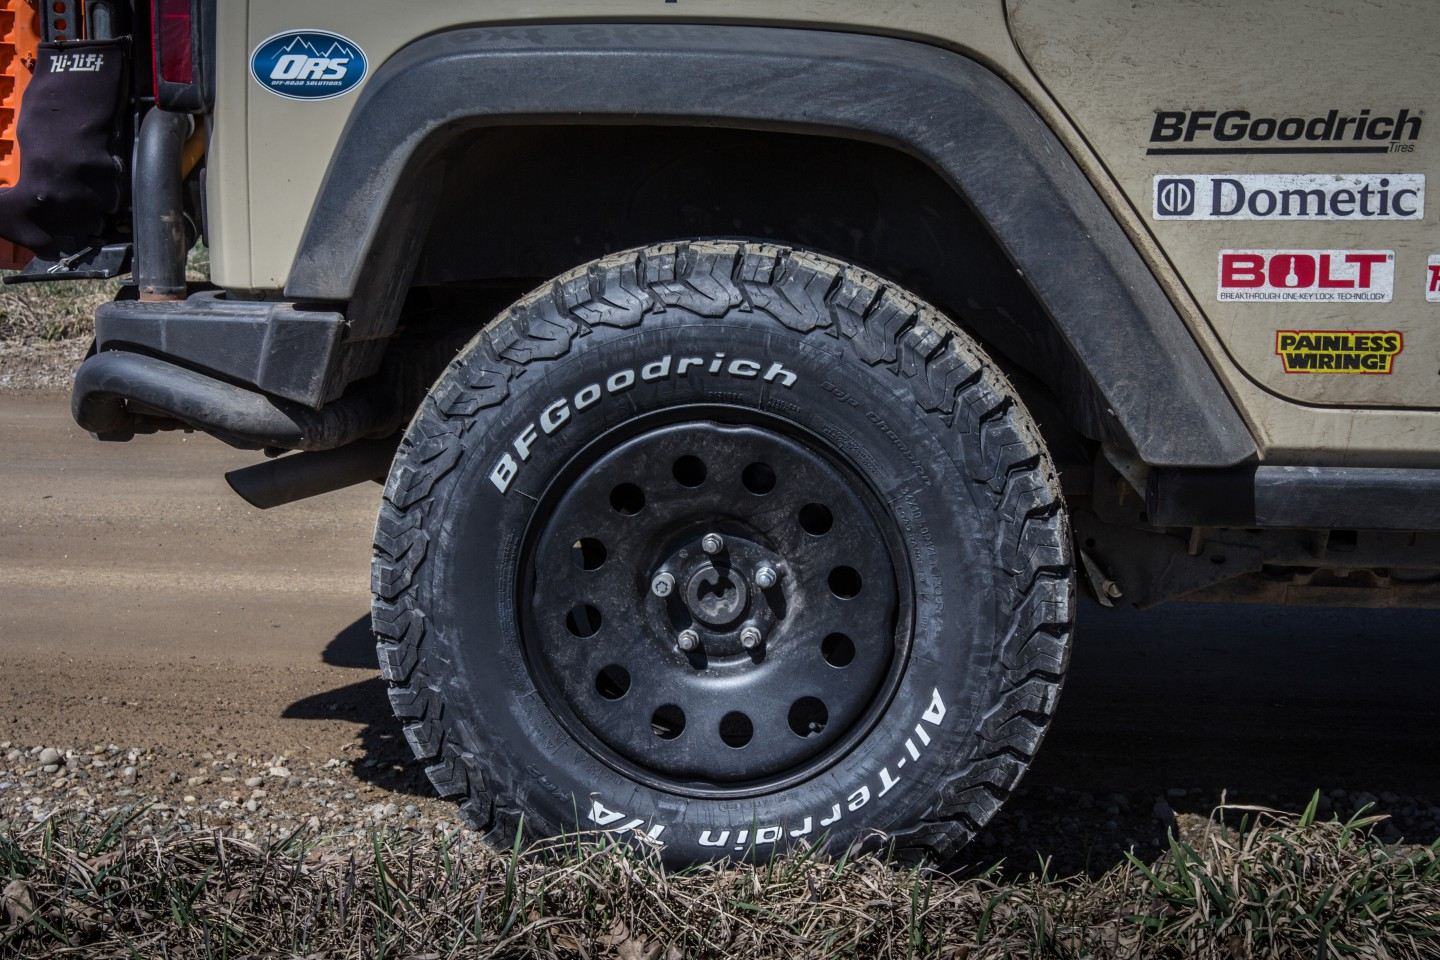 Bfgoodrich Ko2 All Terrain Tires The Road Chose Me